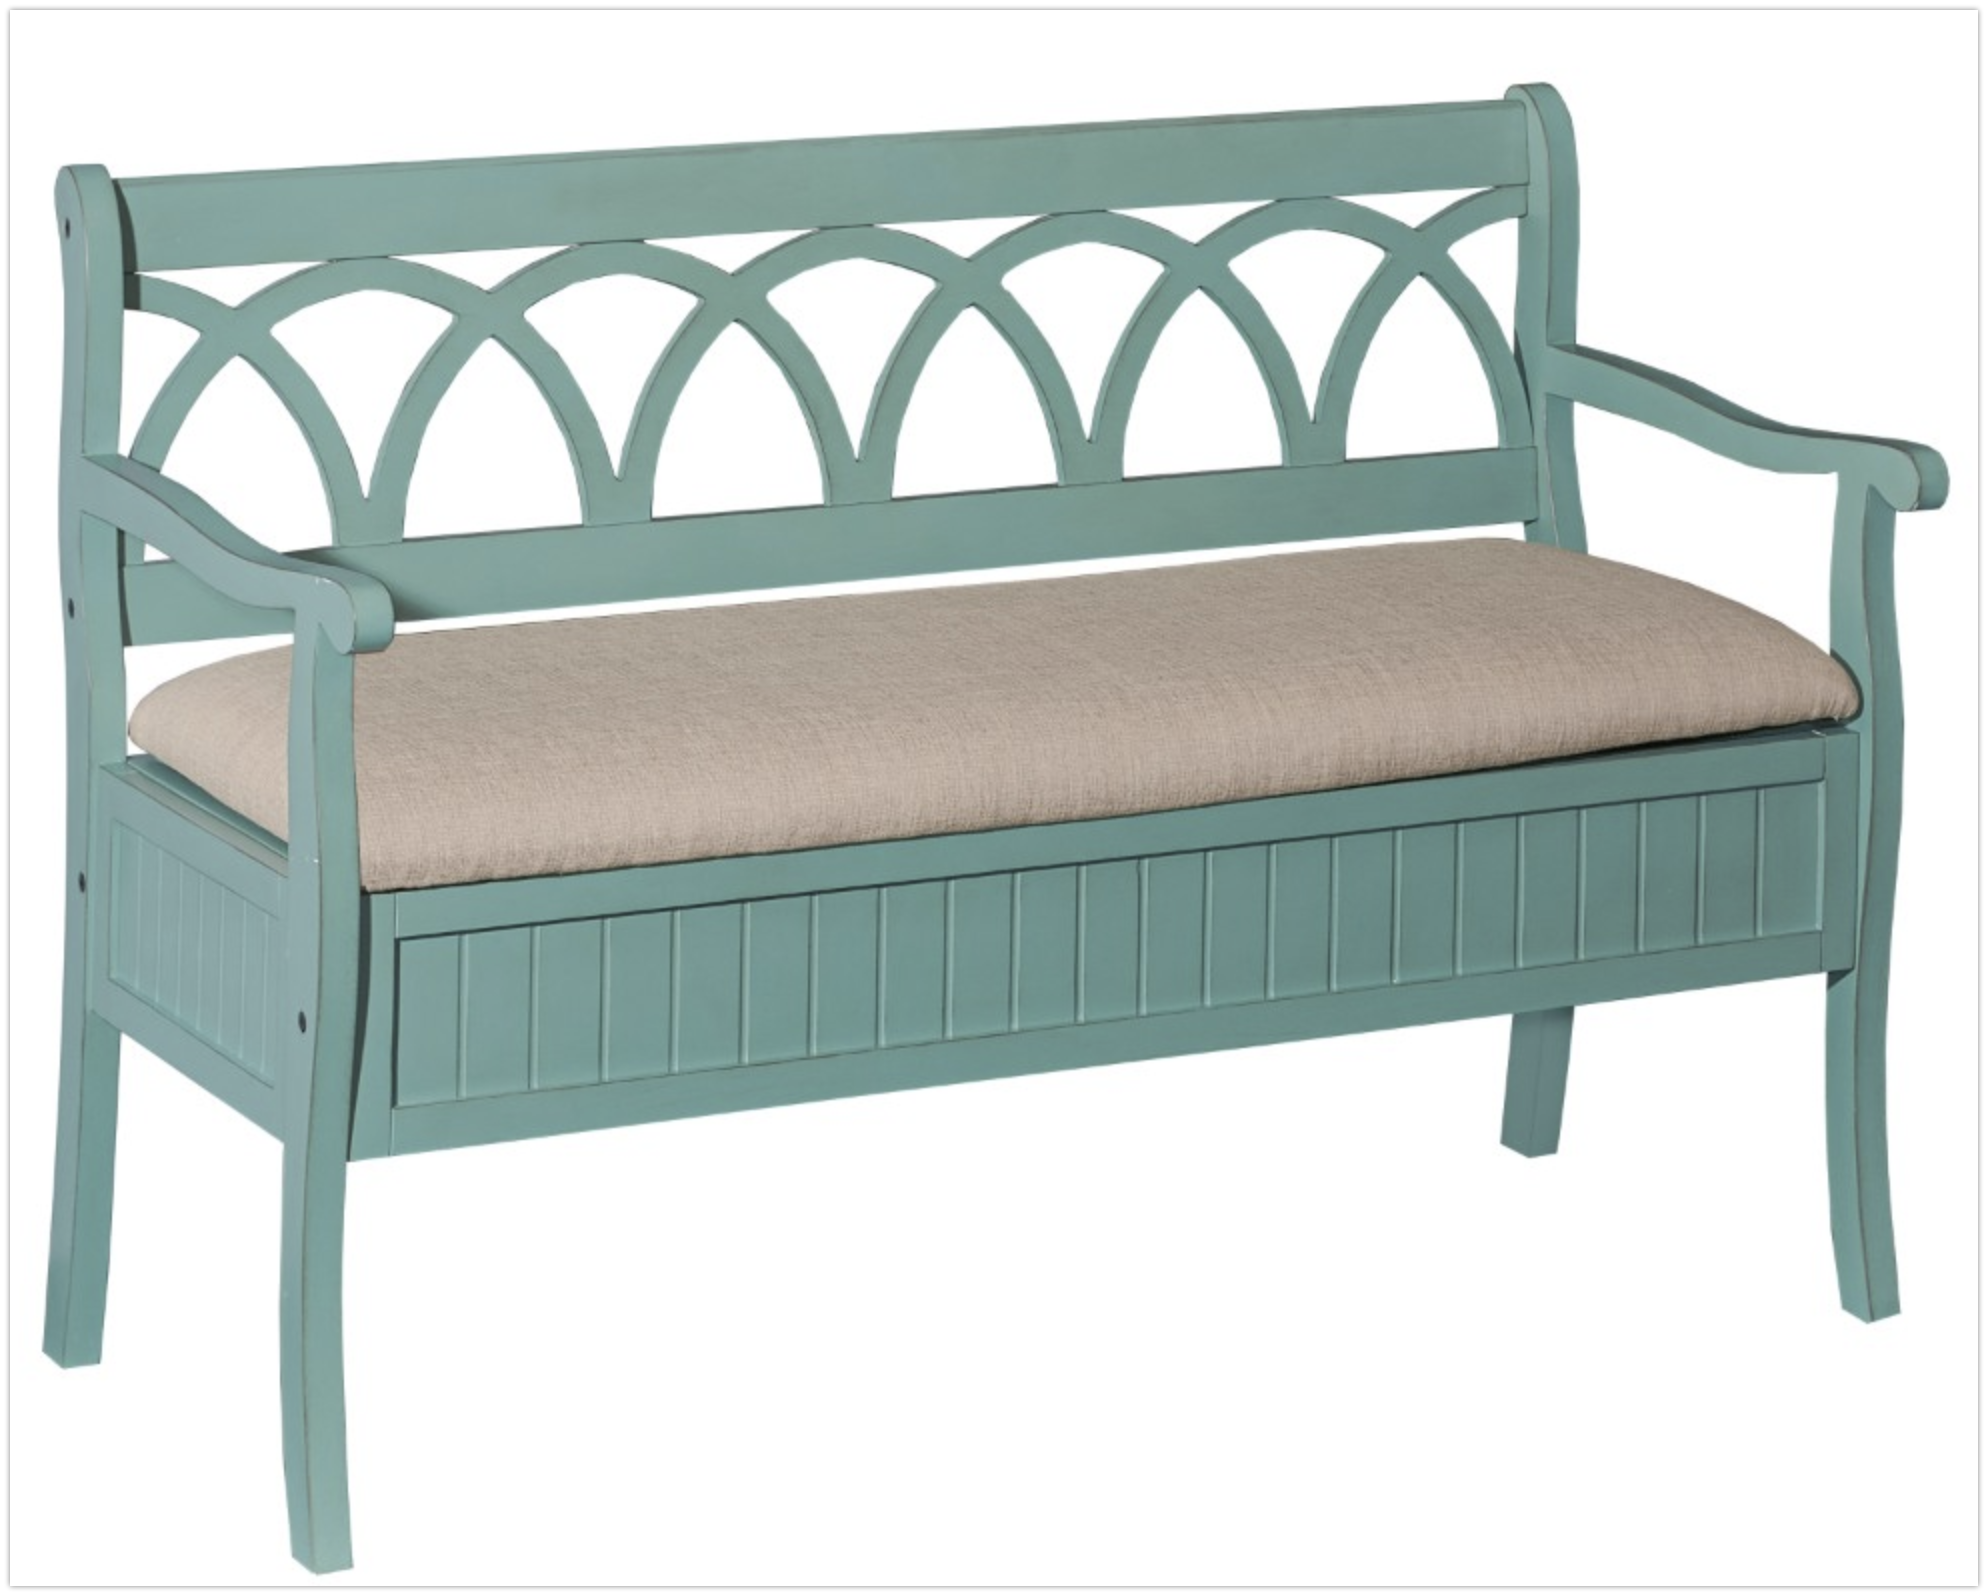 teal-outdoor-bench